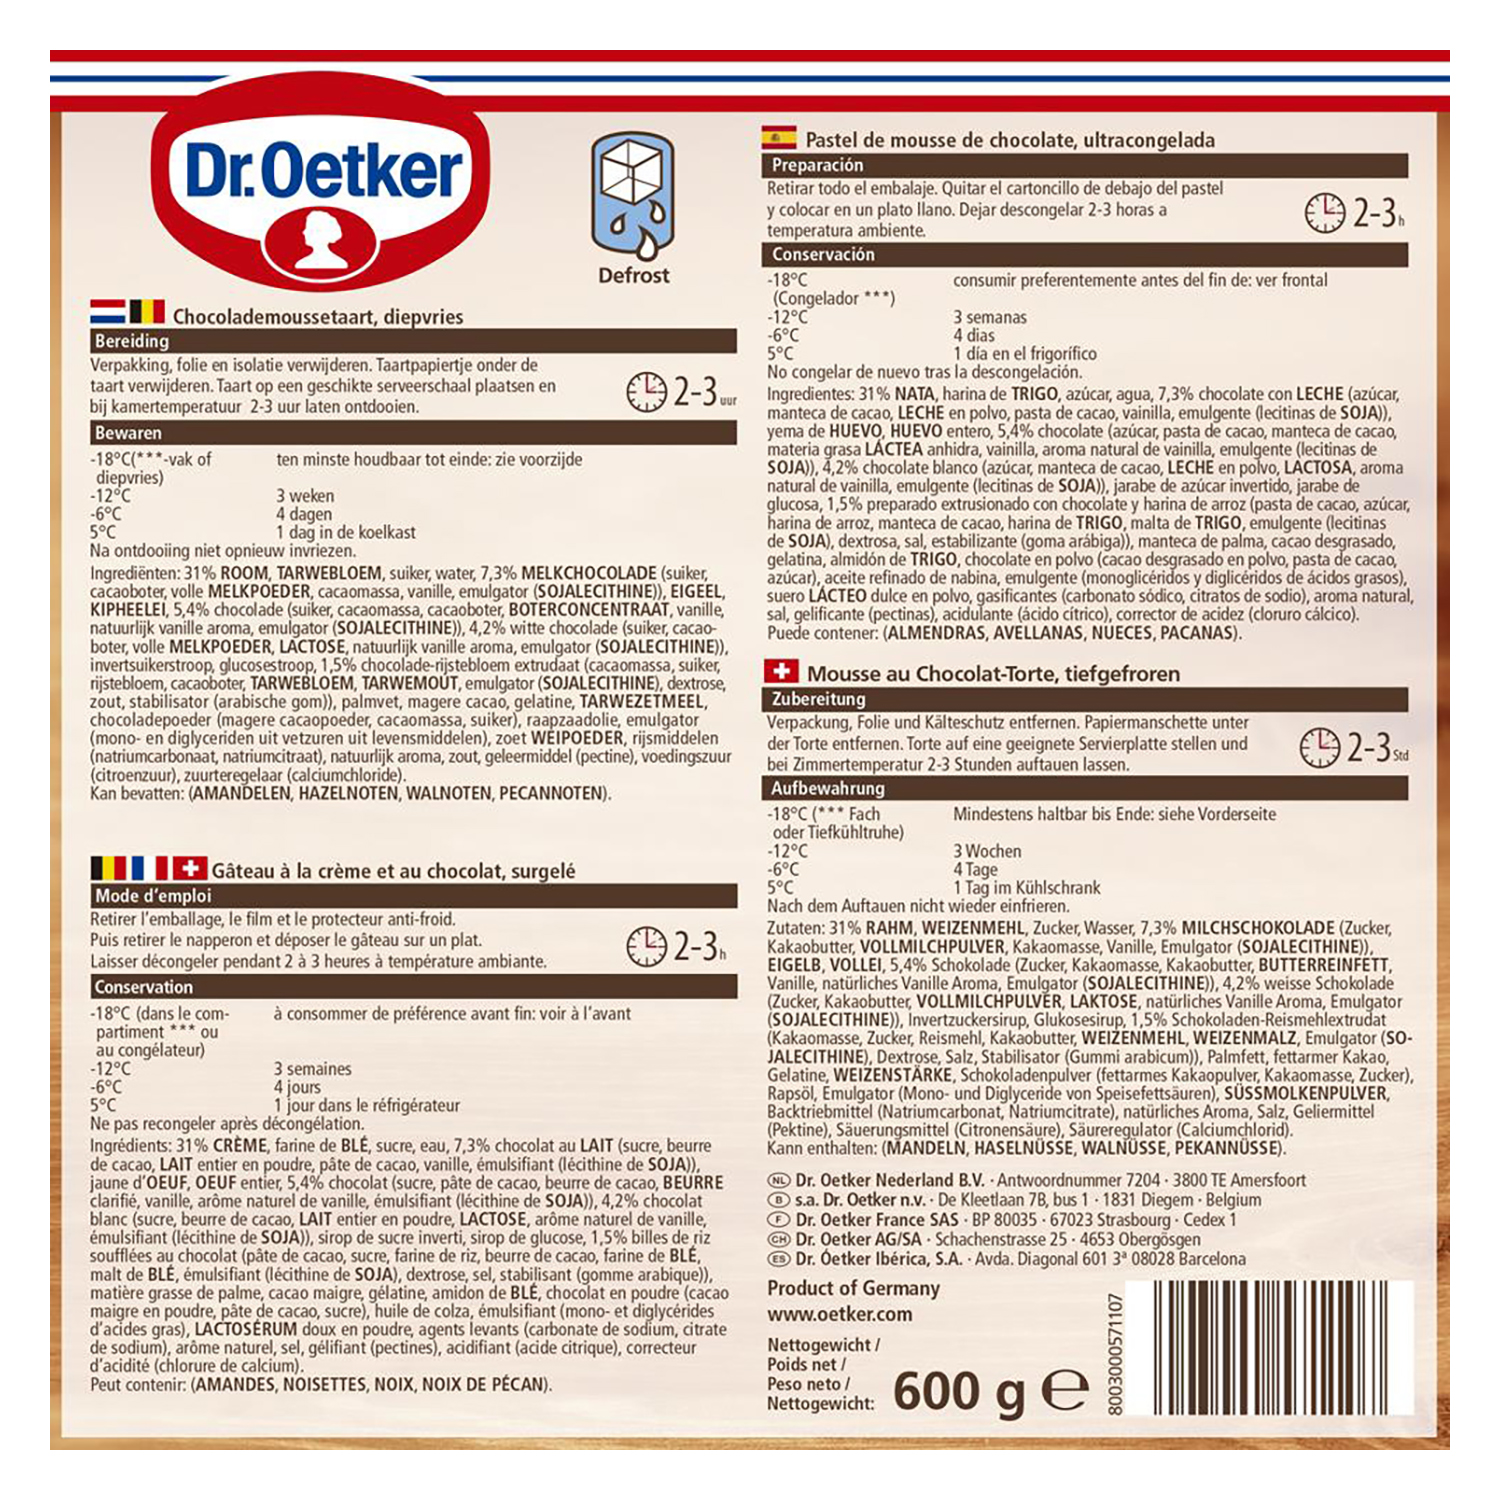 Mousse de chocolate Dr. Oetker 600 g. -